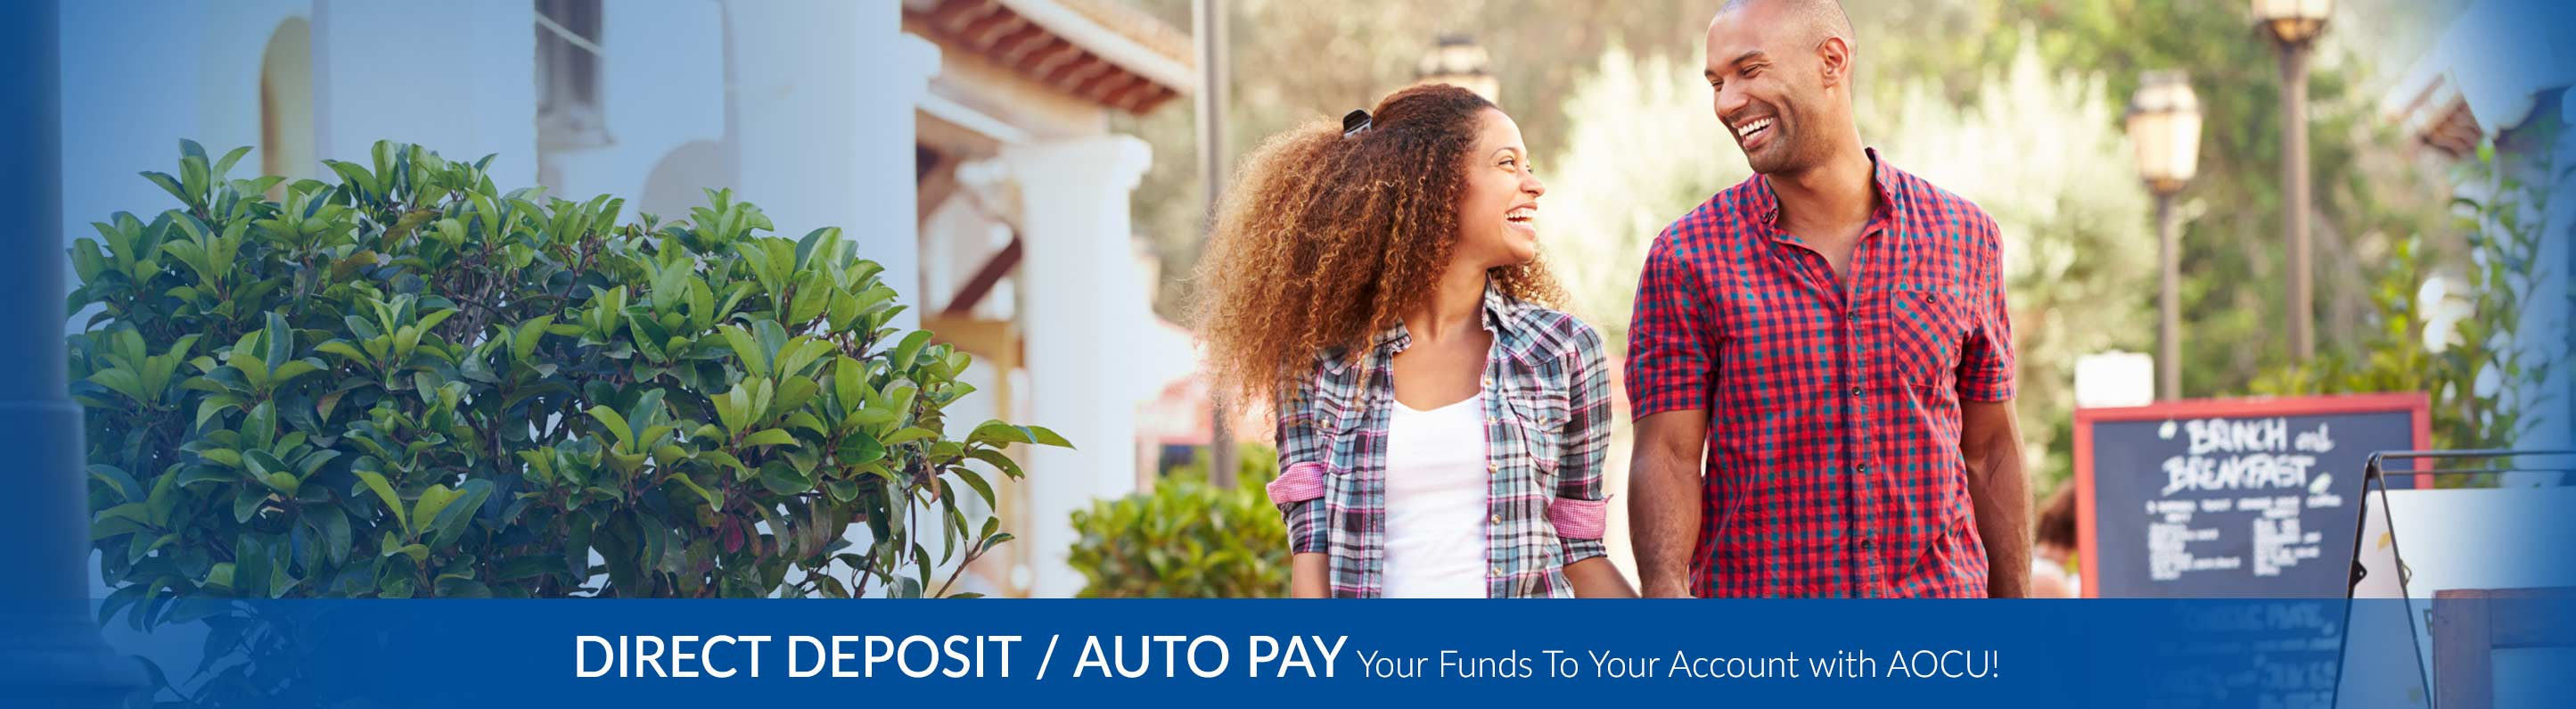 Direct deposit your funds to your account with AOCU - Learn More